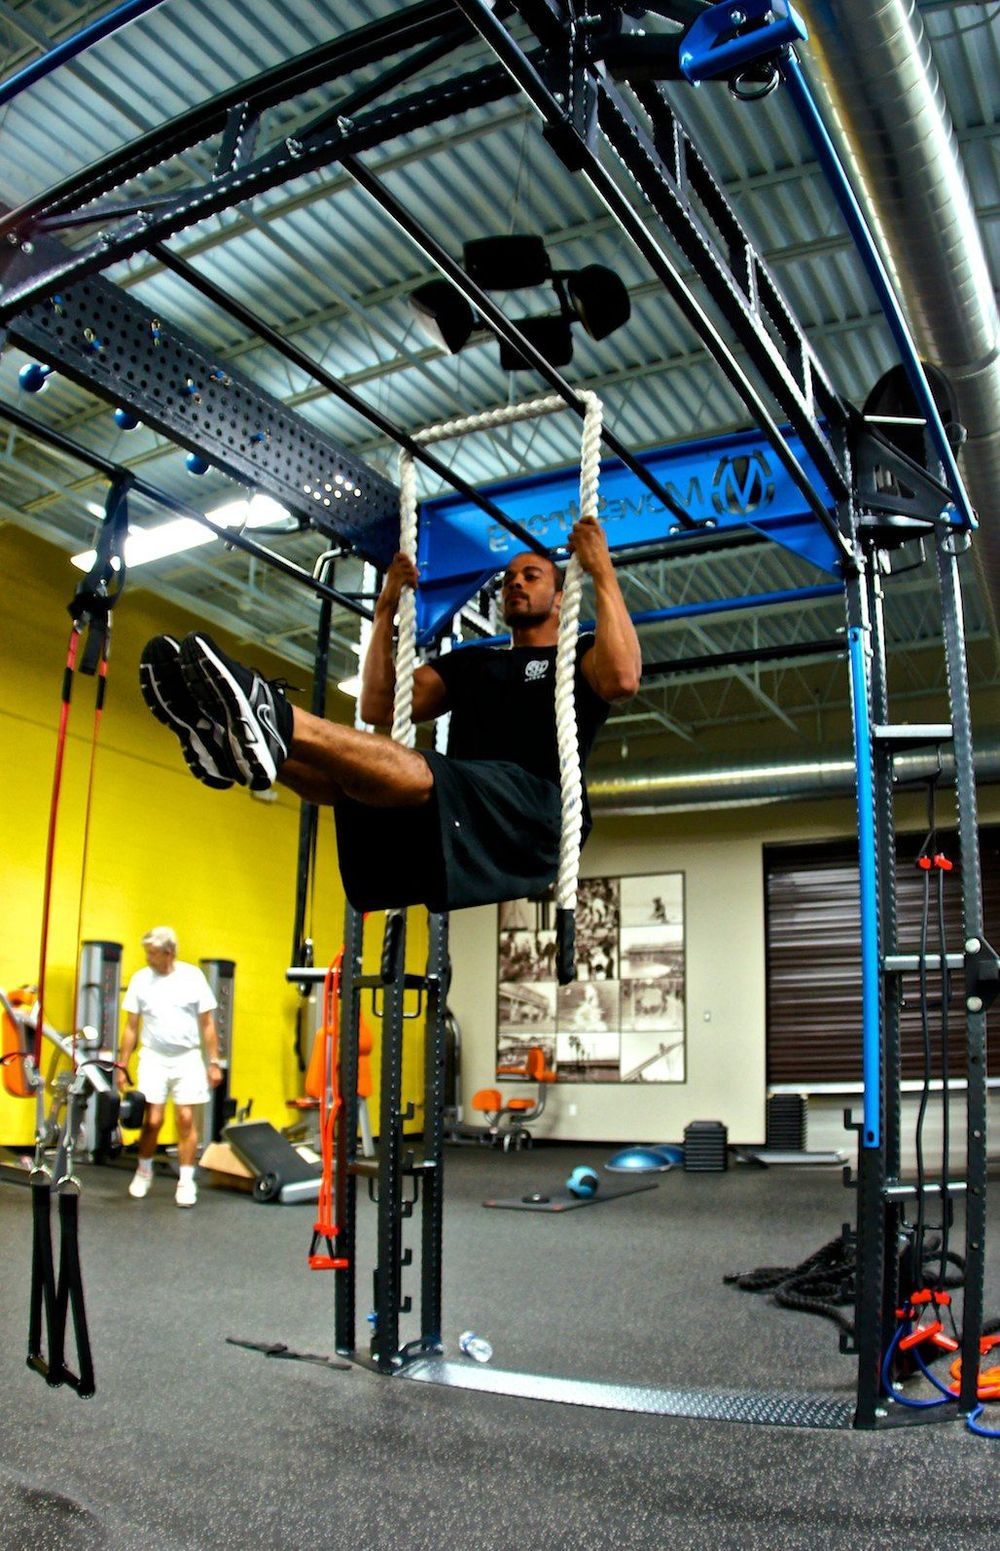 Rope grip pullup